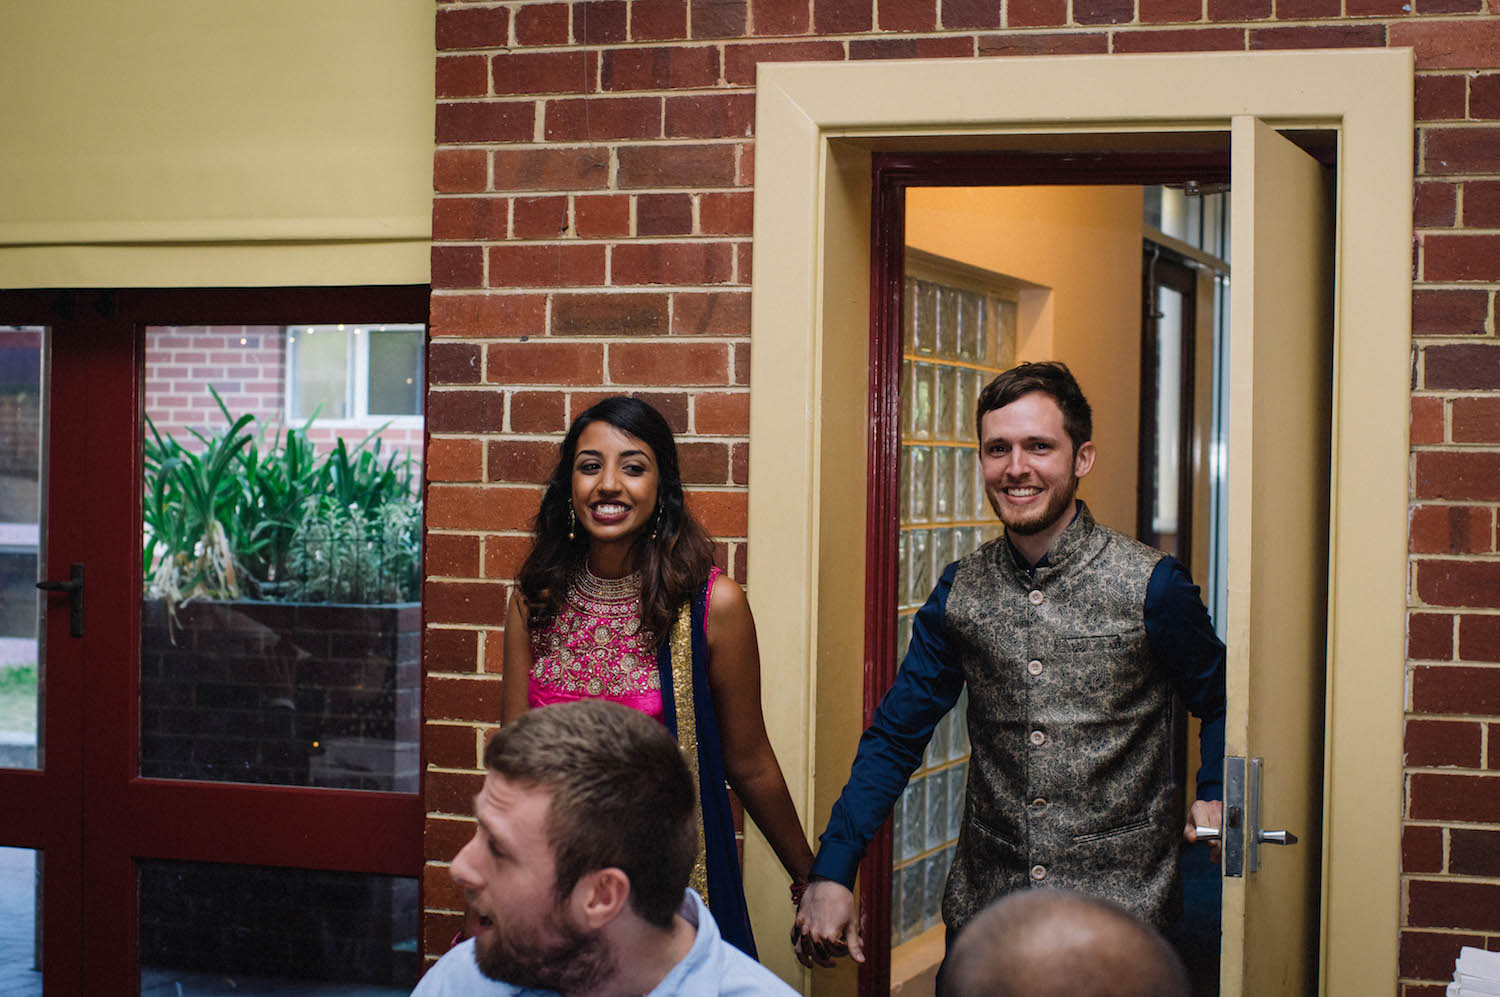 The bride & groom enter their reception at St Matthew's Anglican Church, Subiaco, wearing Indian wedding outfits.